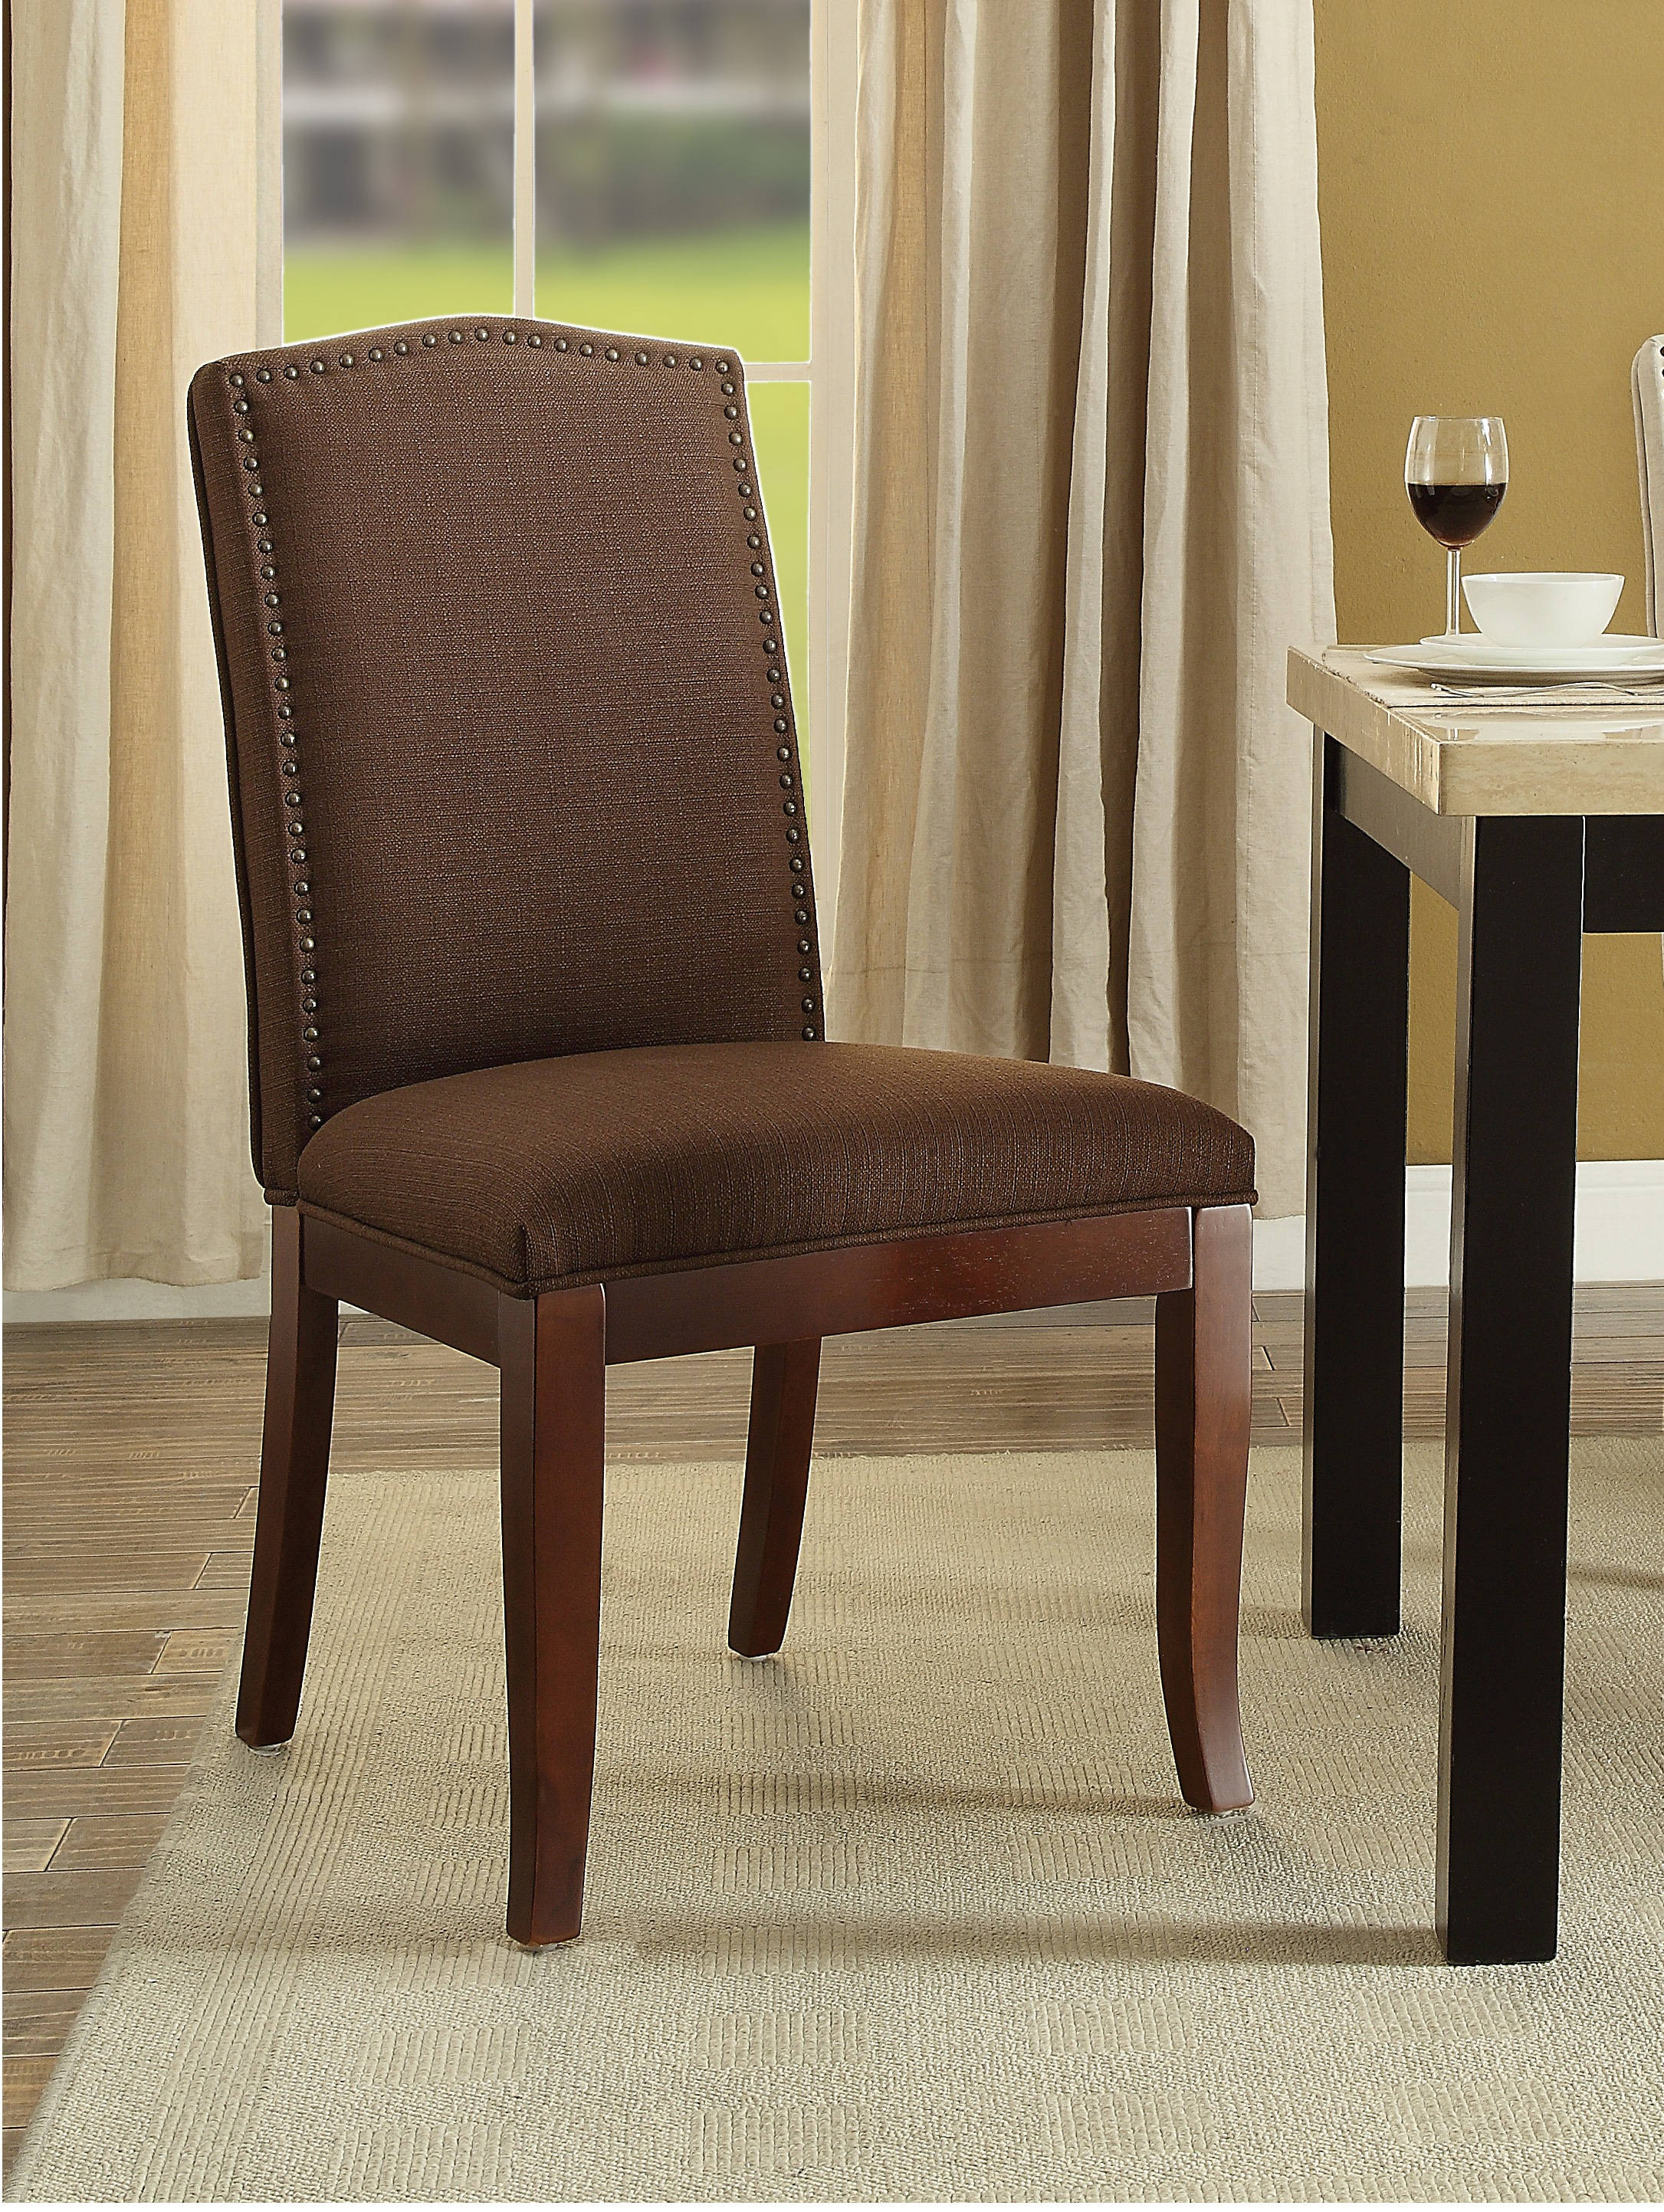 Amazing Hanson Chocolate Fabric Espresso Wood Legs Nailhead Trim Gmtry Best Dining Table And Chair Ideas Images Gmtryco